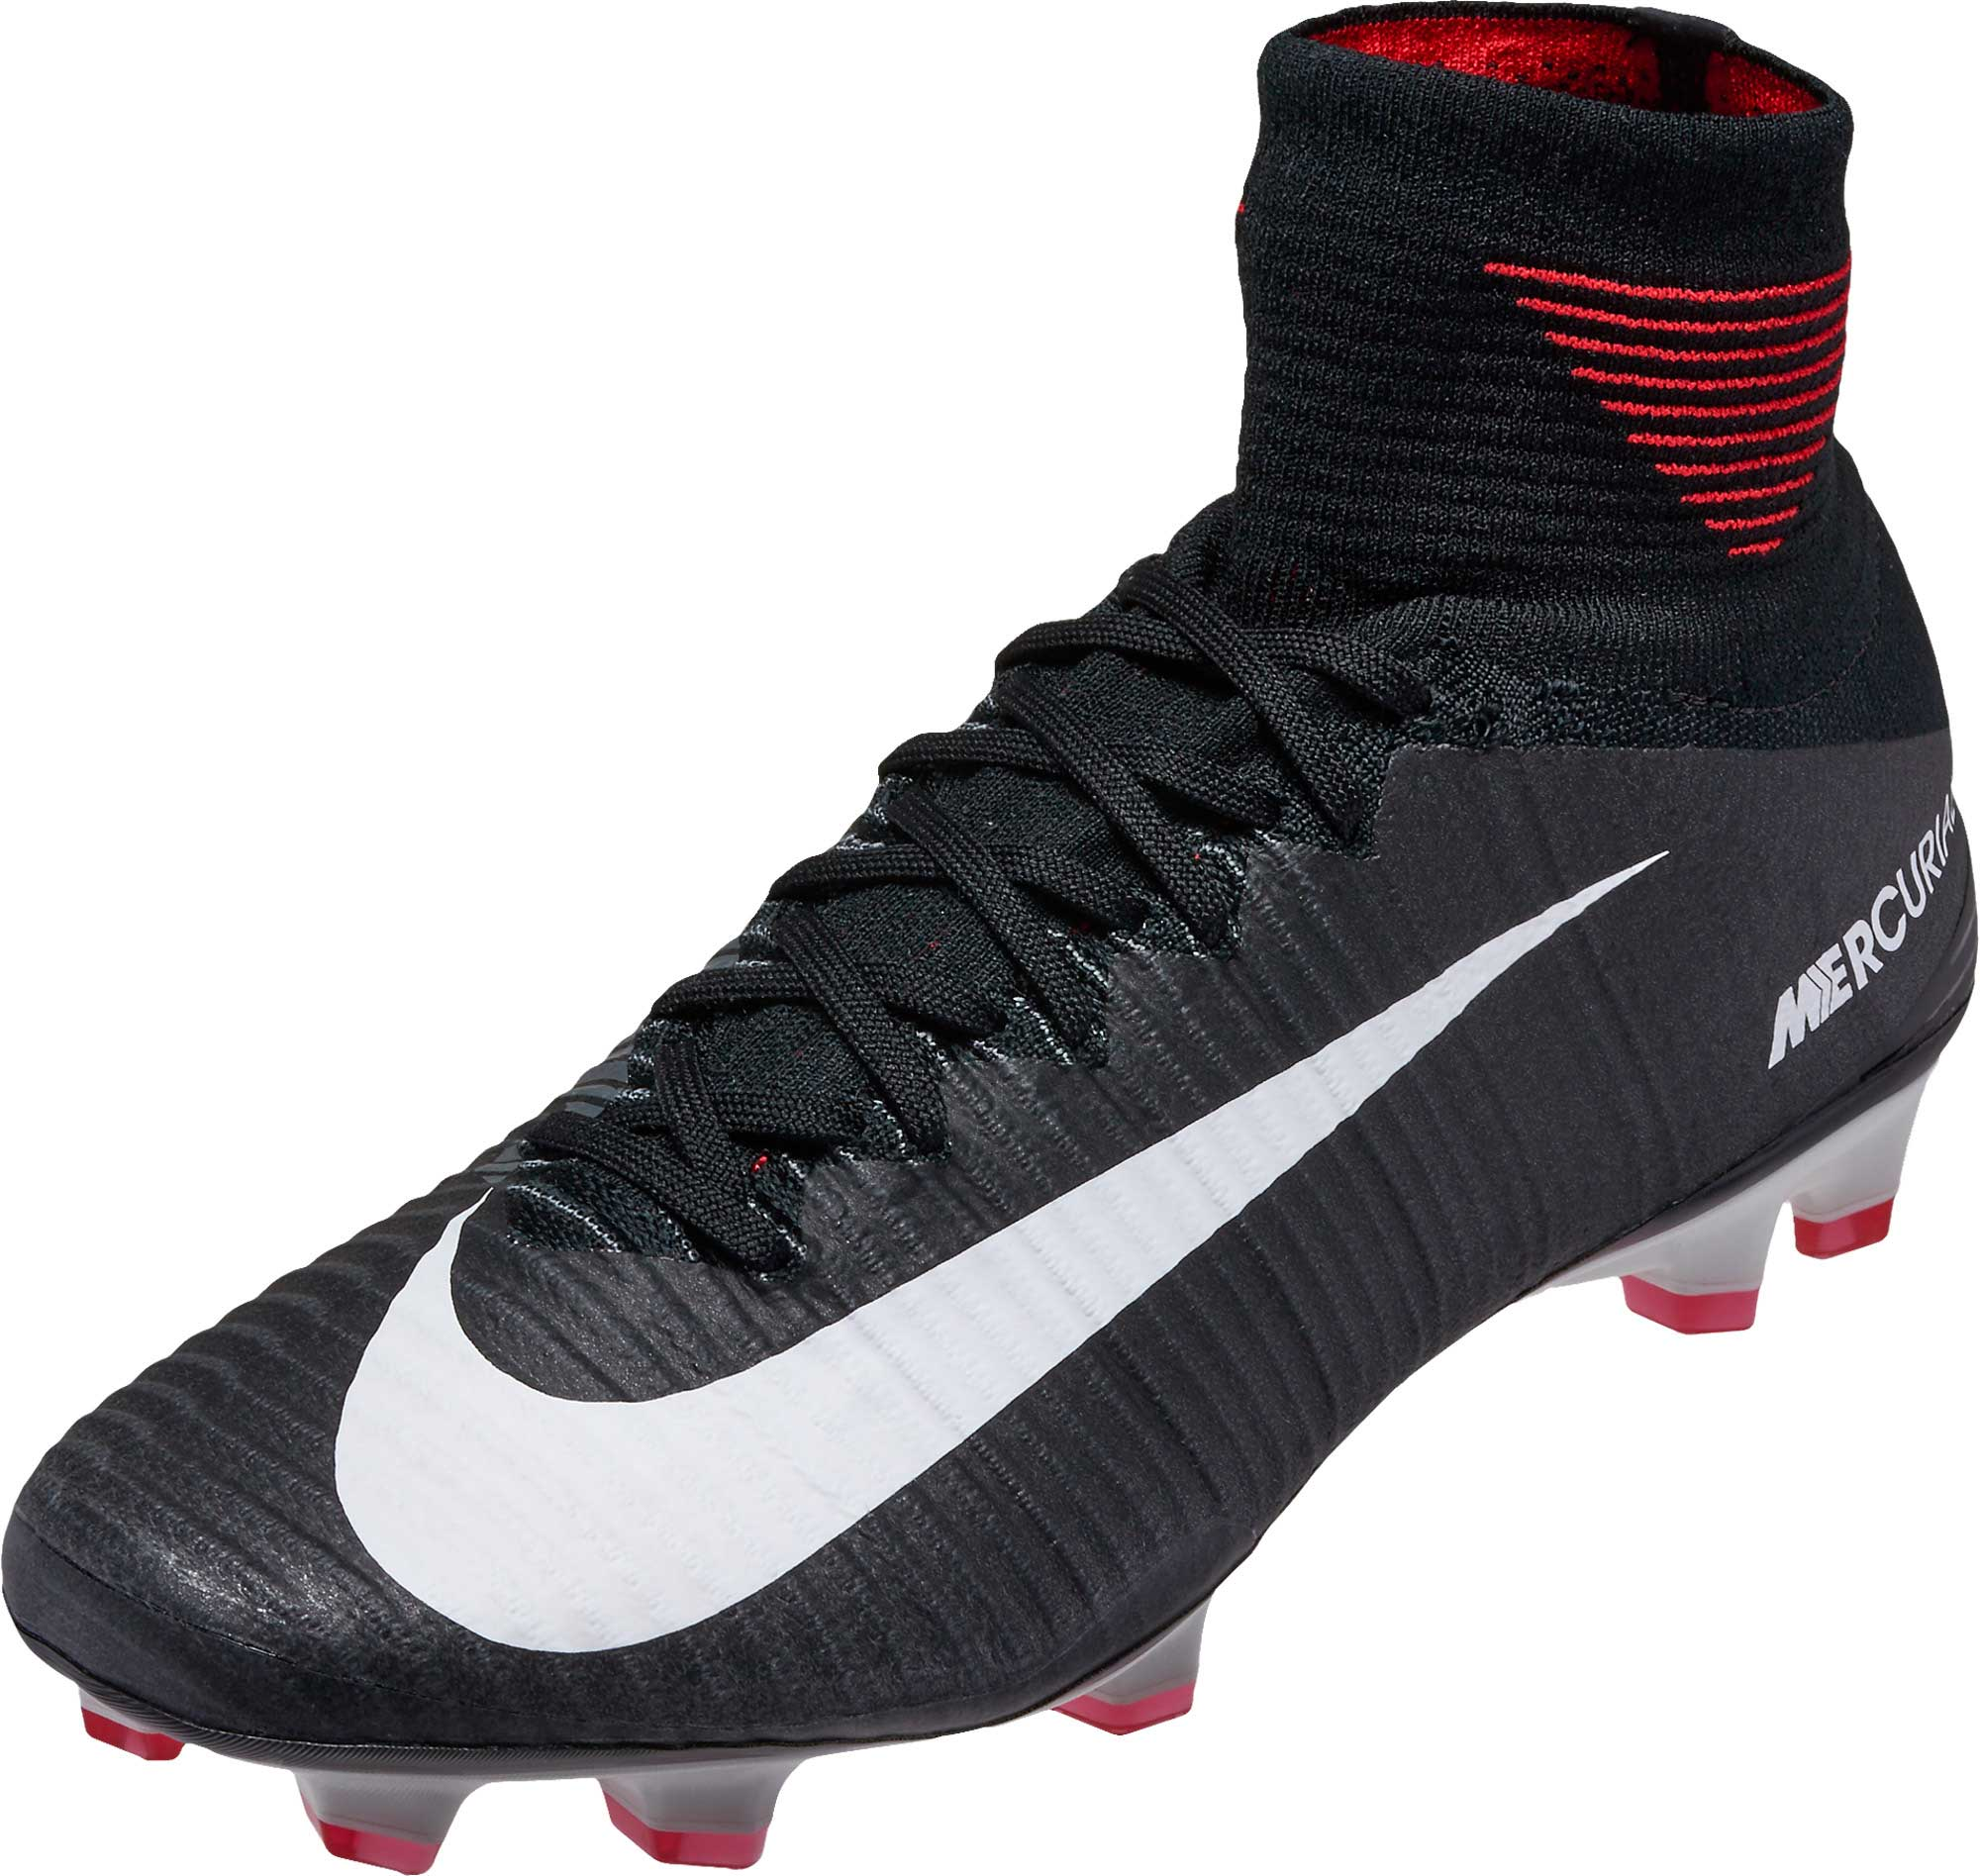 timeless design 402ec 94e1e Nike Mercurial Superfly V FG – Black/White